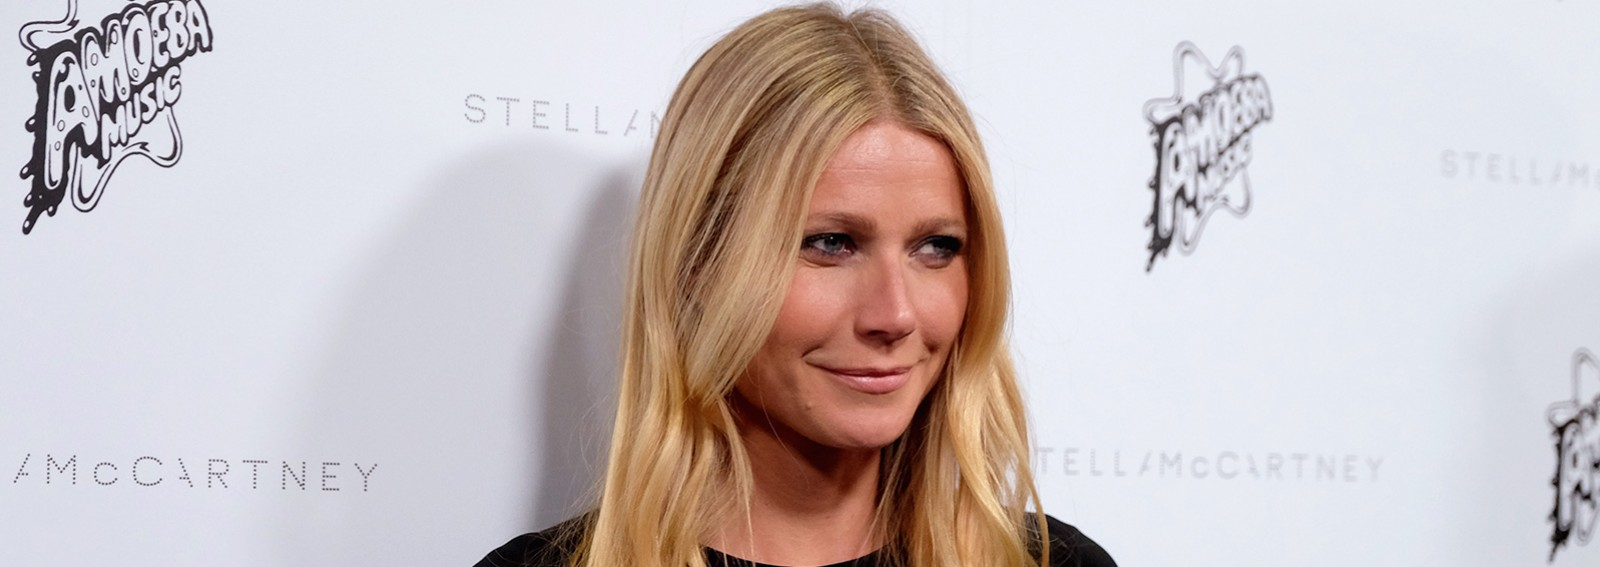 Gwyneth Paltrow posts photo with look-alike daughter